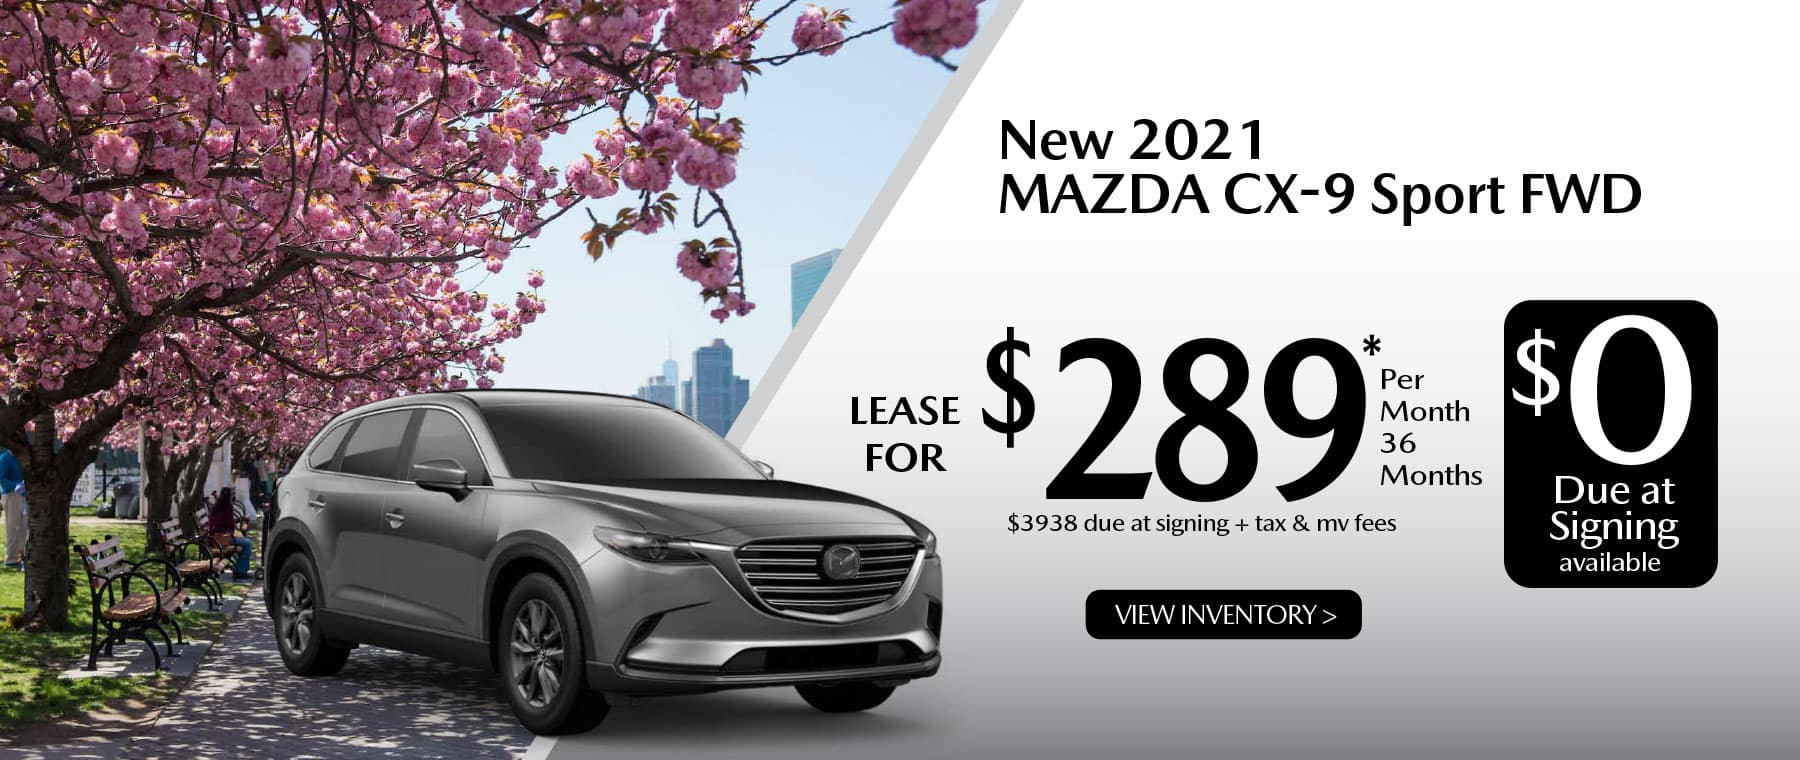 04 CX-9 hi New Lease Special Offer Garden City Mazda NY